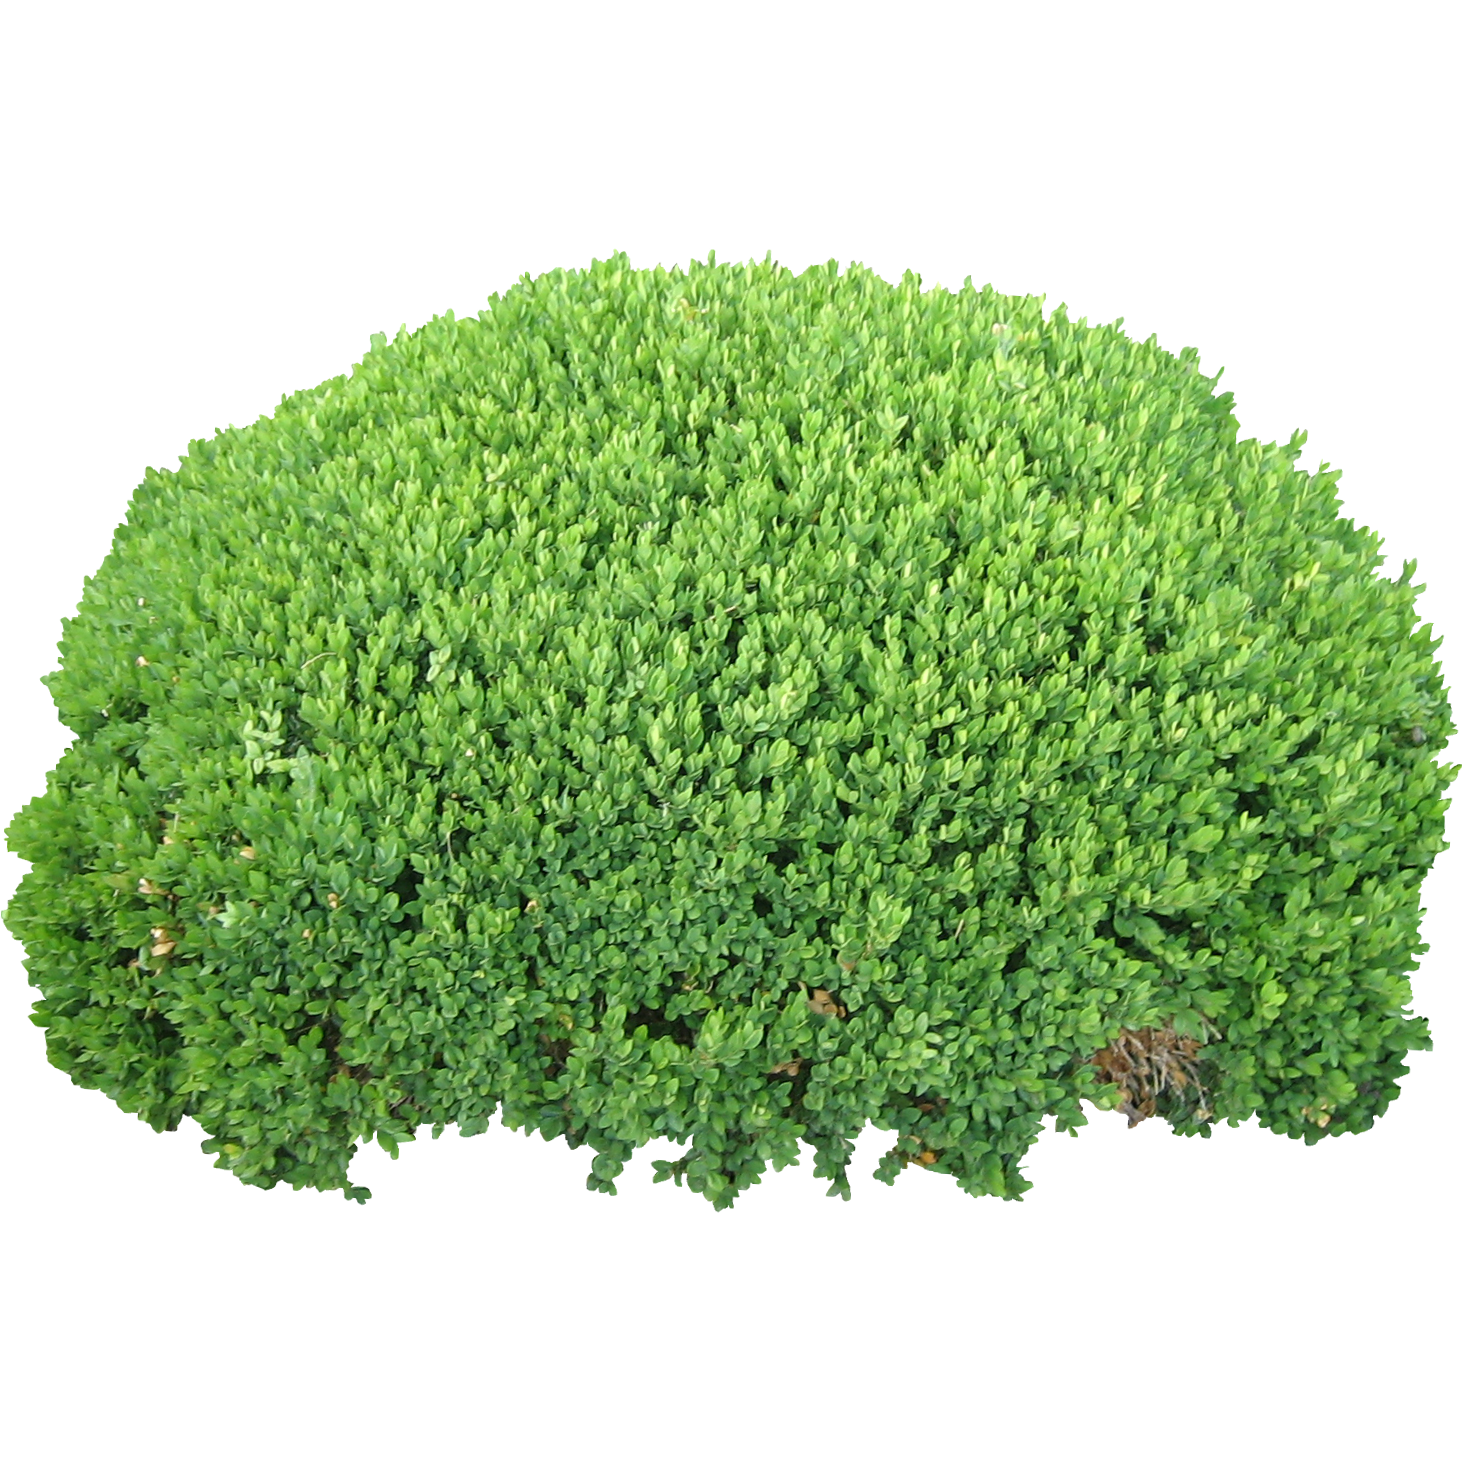 Landscape bushes png. Images free download bush